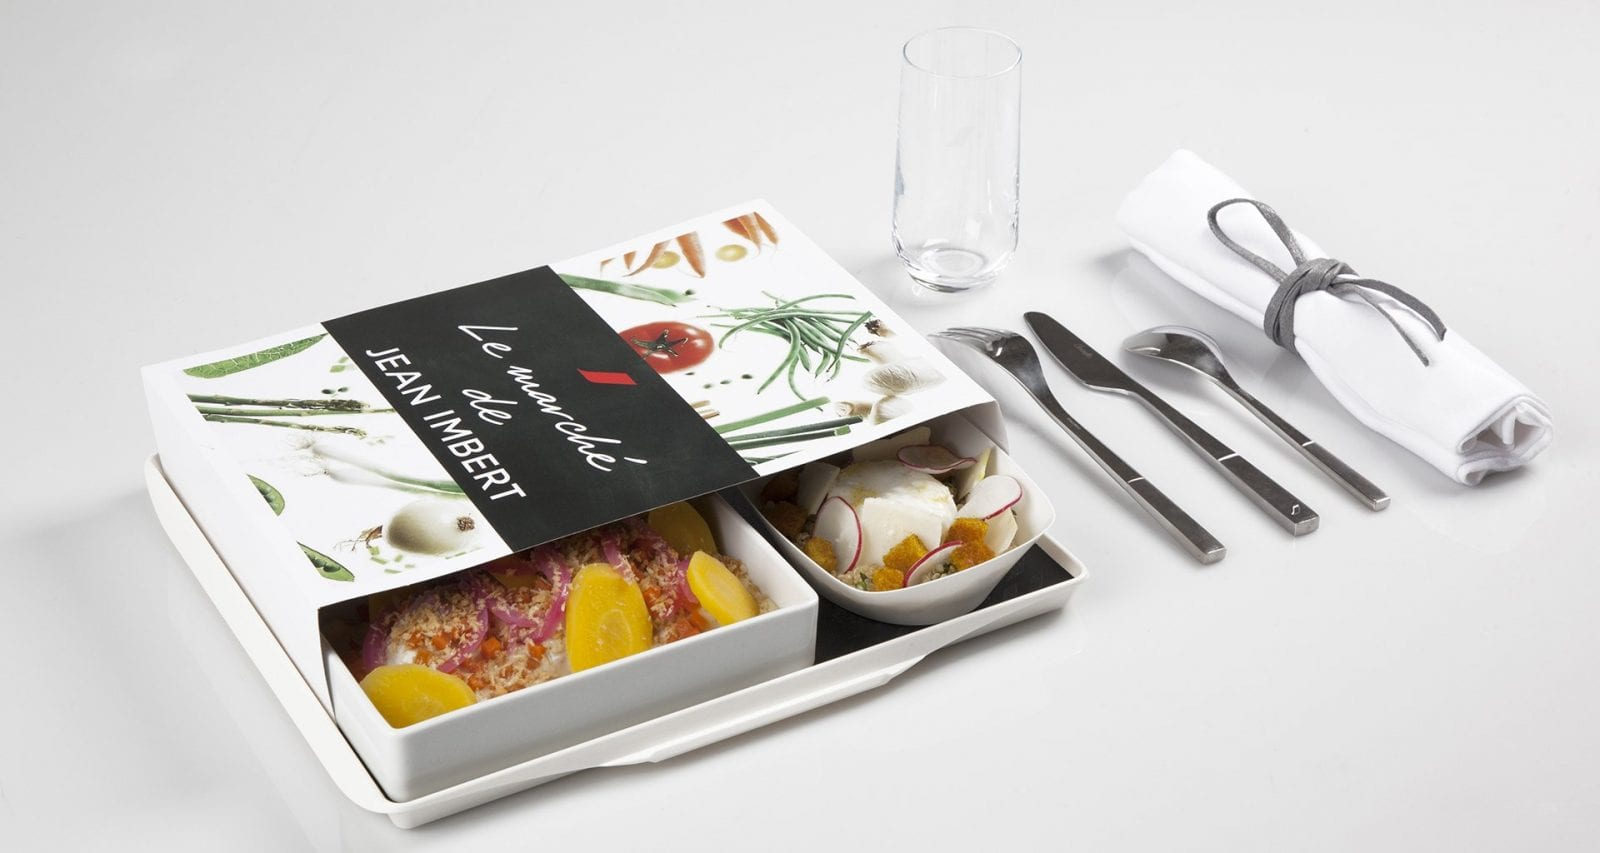 Air France Jean Imbert economy class pre order meal